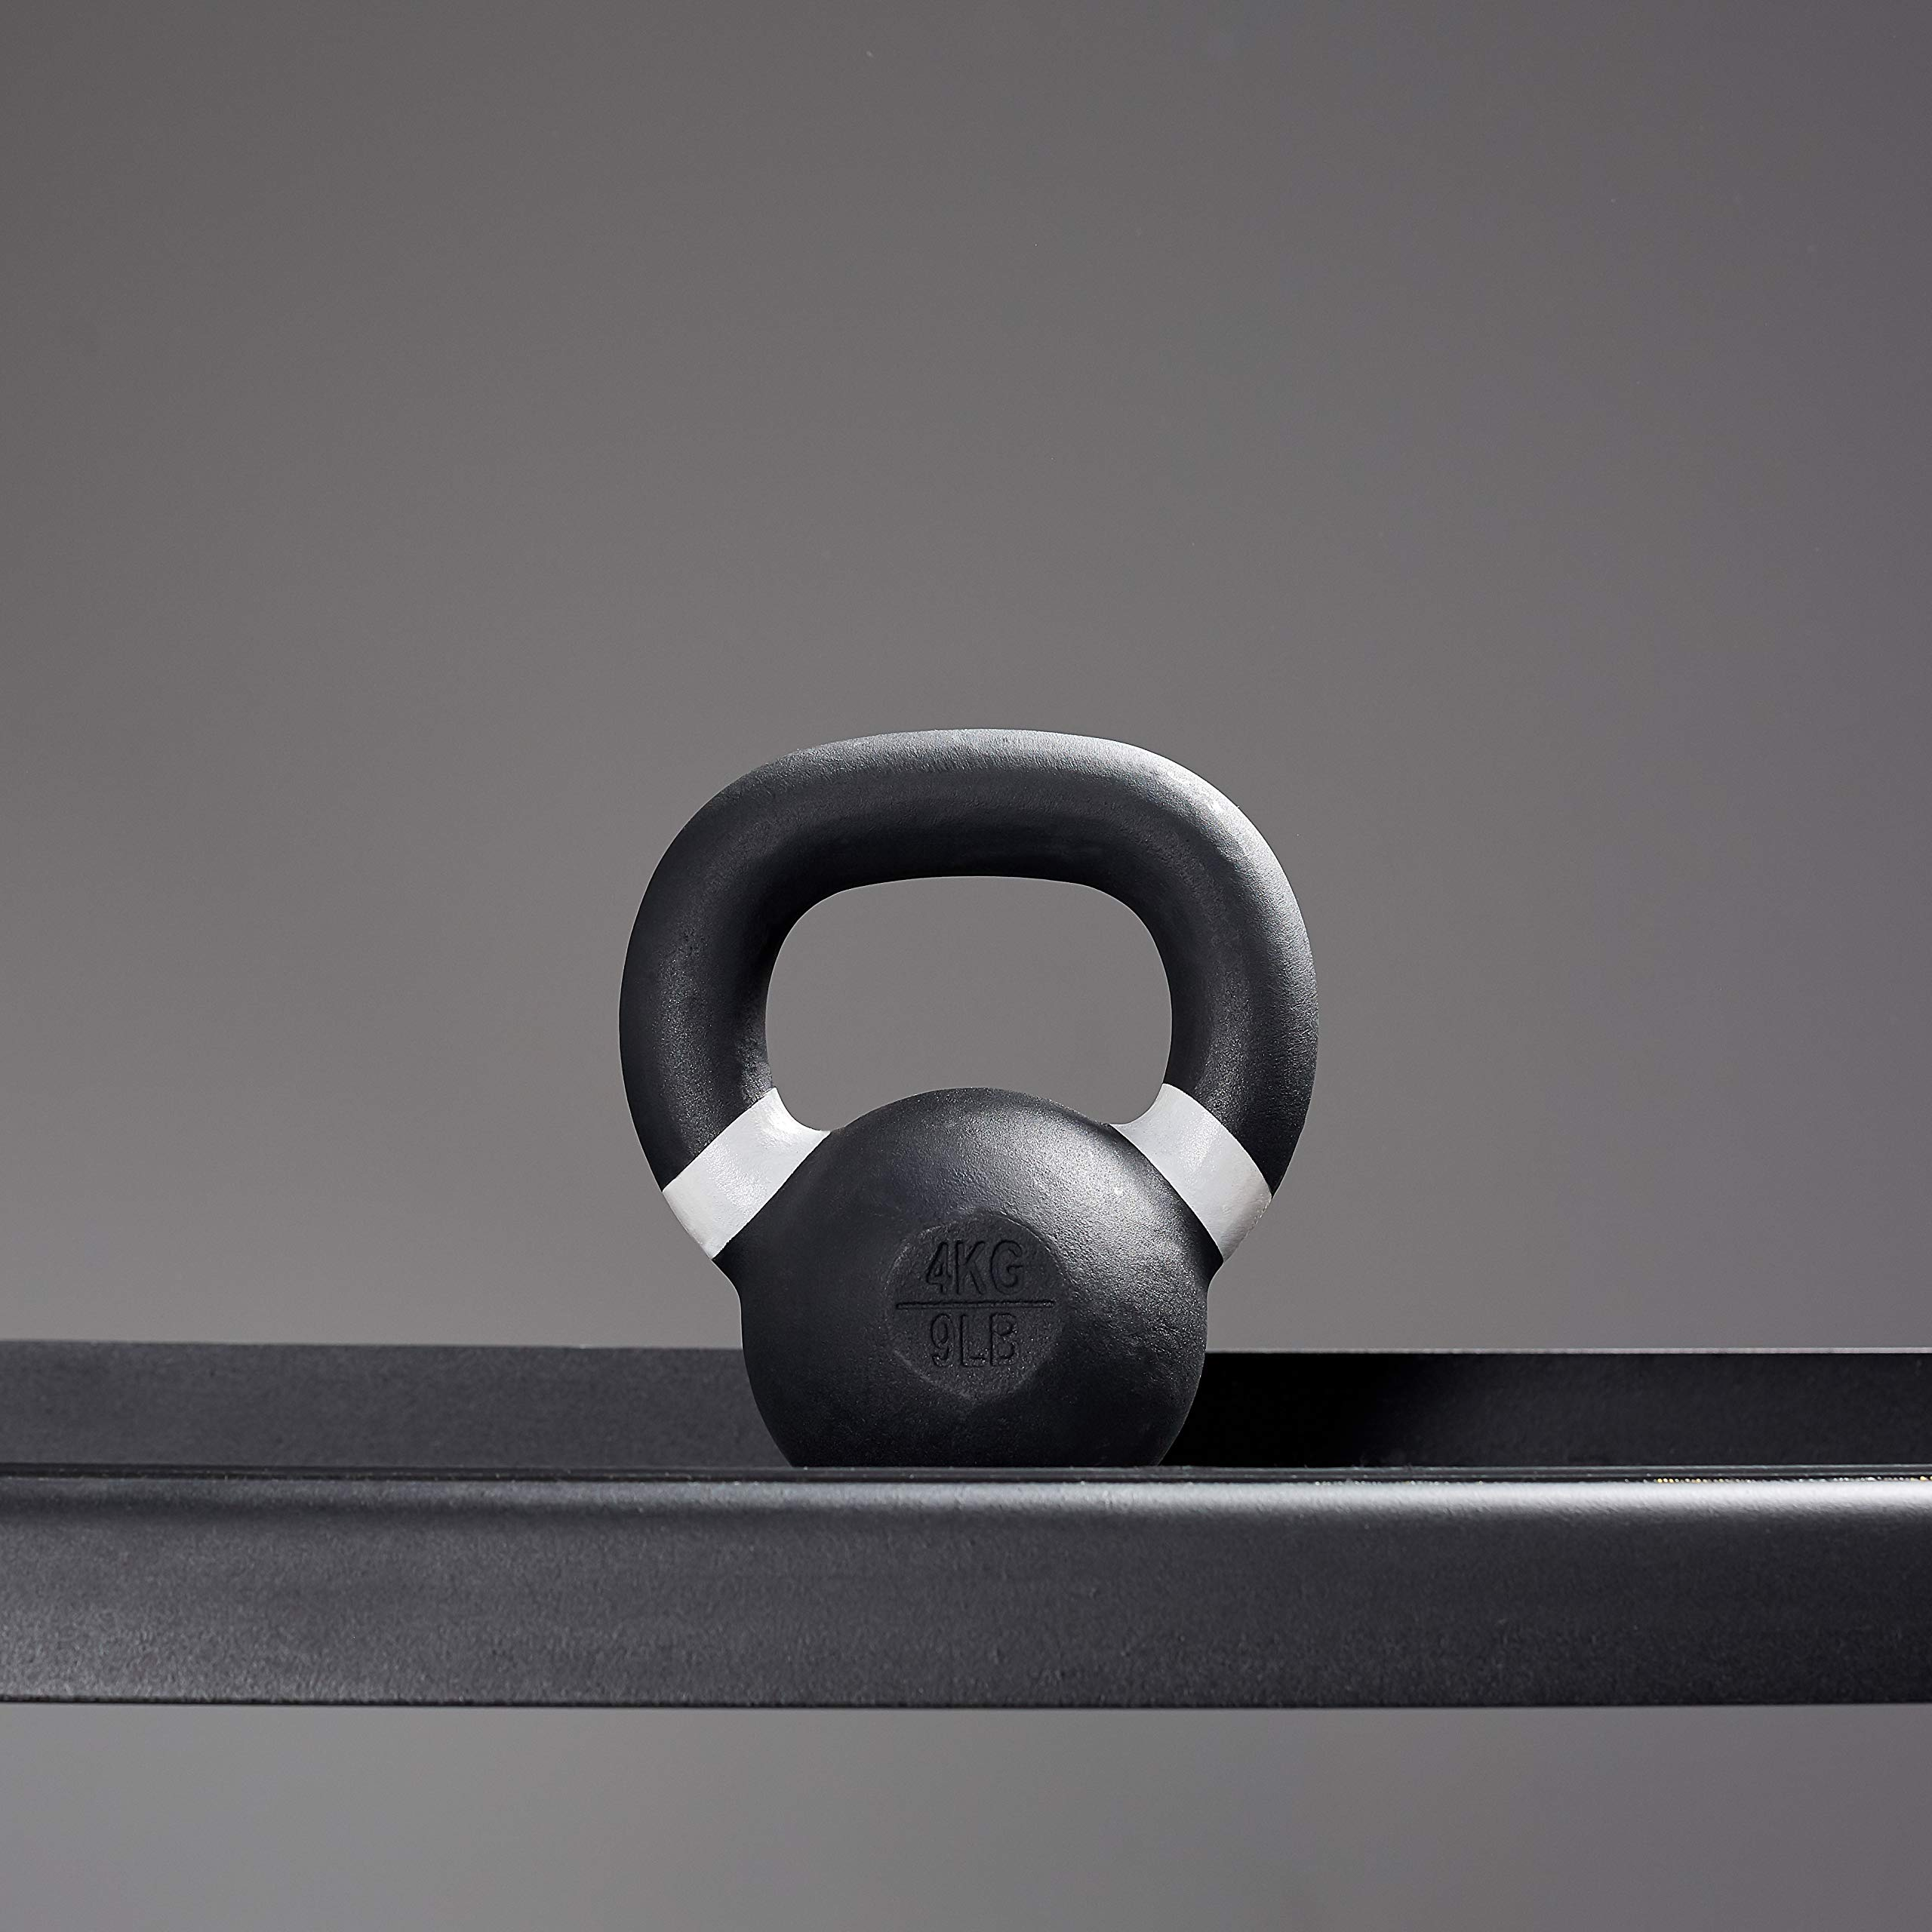 Rep 4 kg Kettlebell for Strength and Conditioning by Rep Fitness (Image #3)